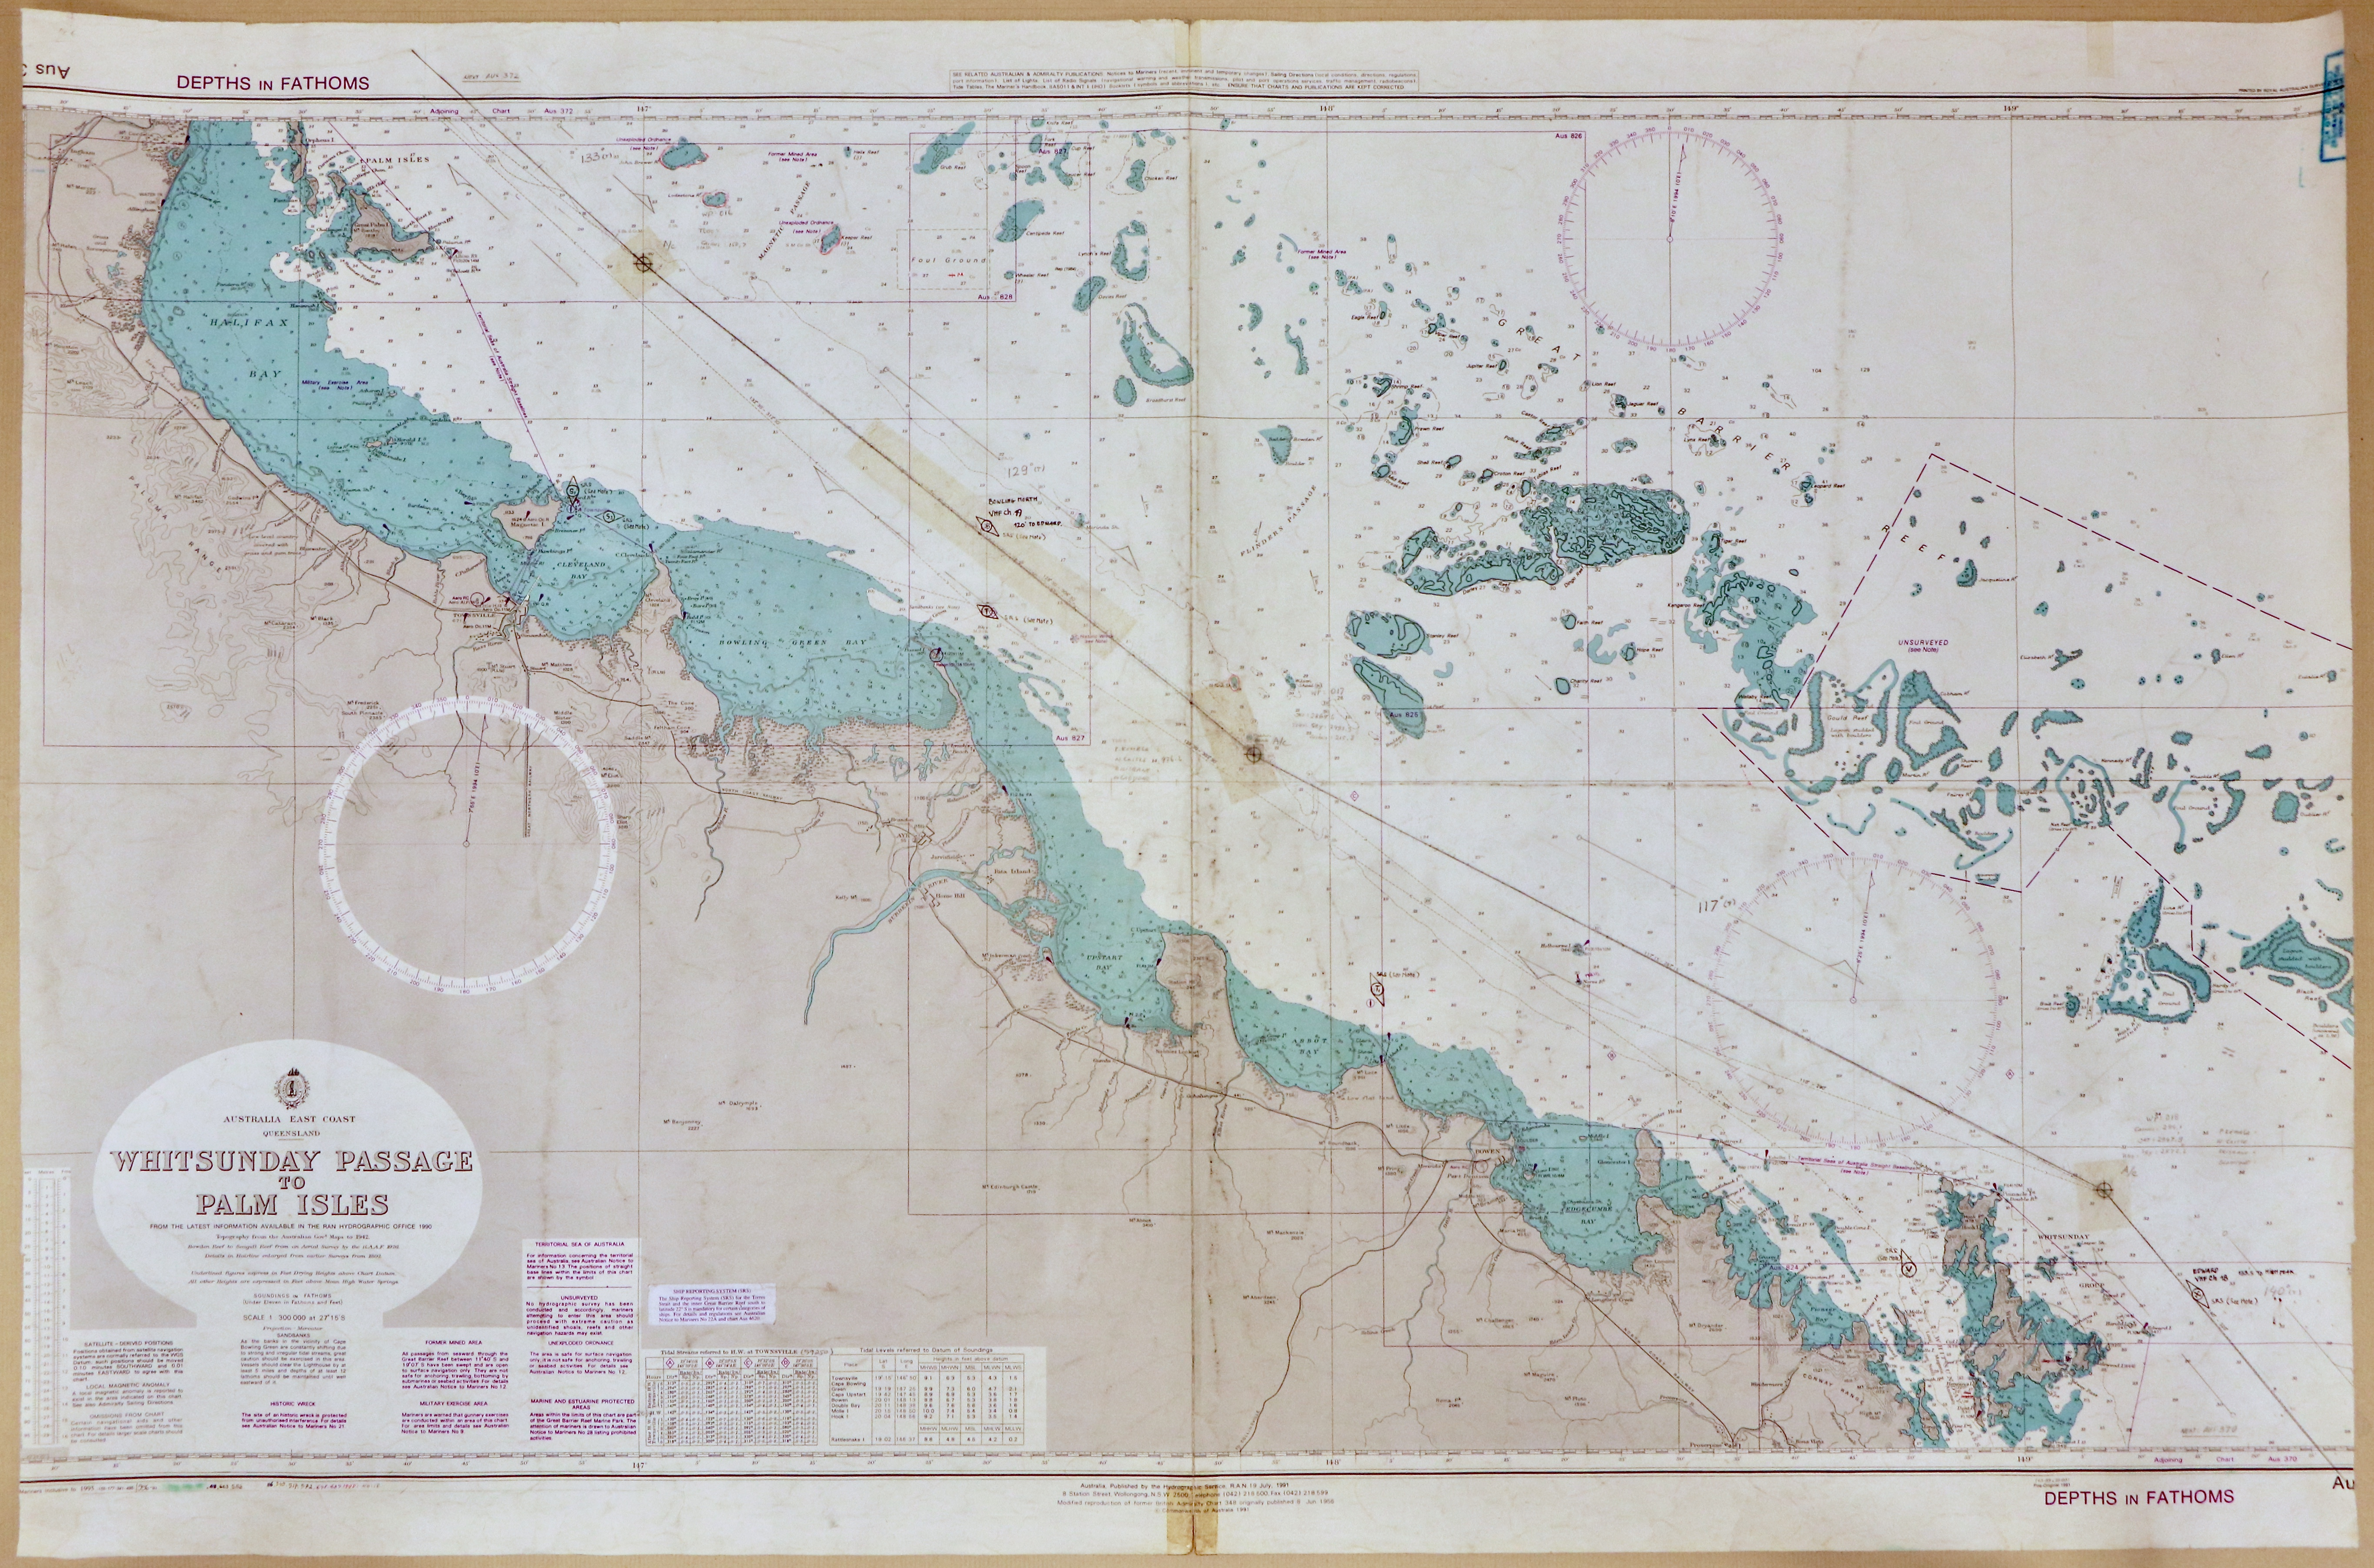 30 - Whitsunday Passage to Palm Isles